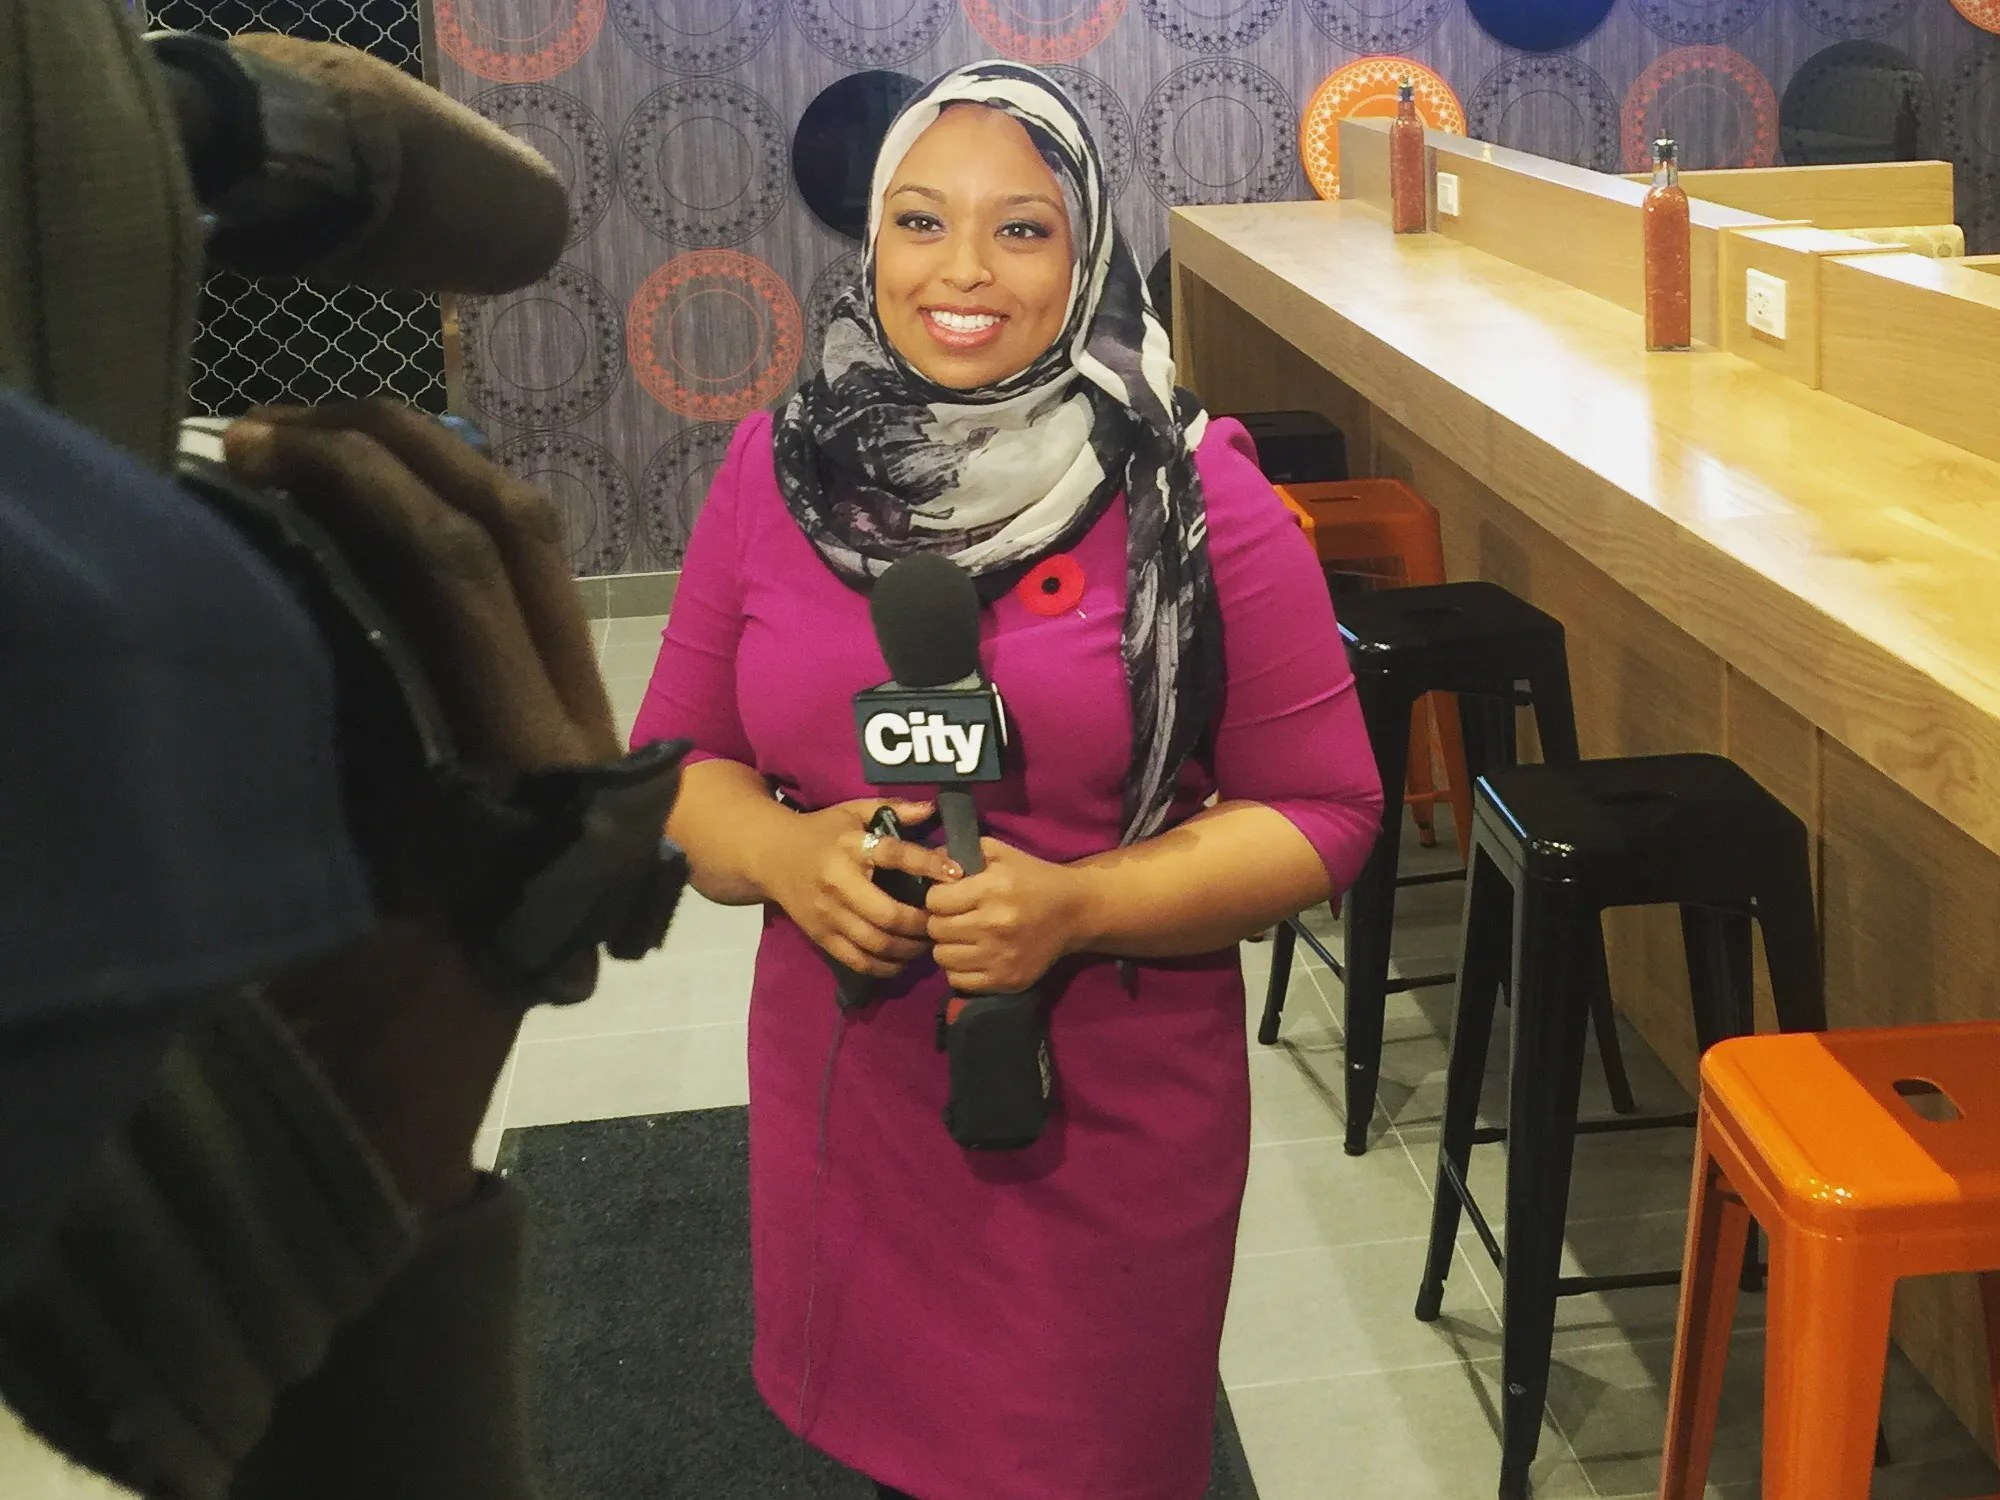 When a reporter from the sun thought it inappropriate that she reported on the terrorist. Meet Ginella Massa Canada S First Hijab Wearing News Anchor Allure